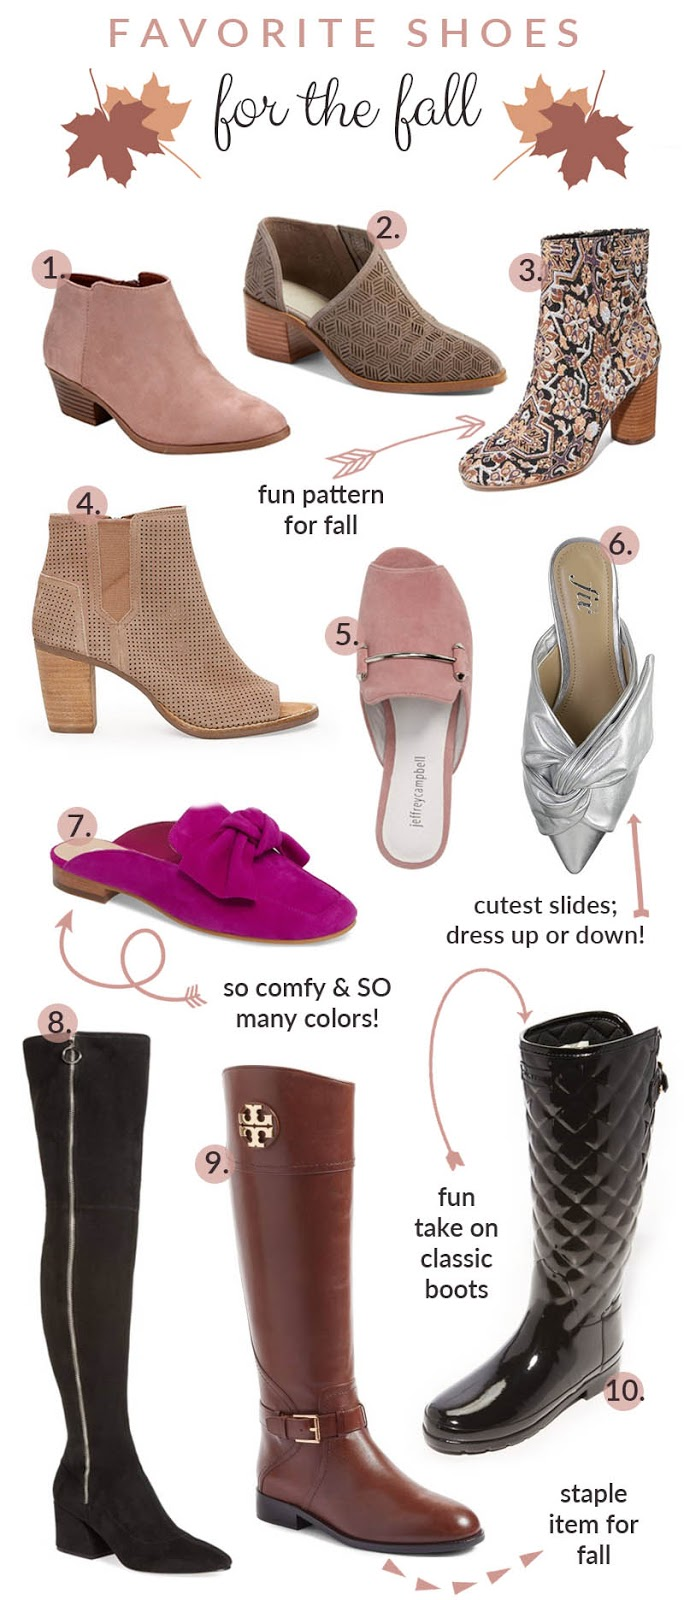 The Must Have Shoes for Fall - Boots, Booties & Mules by fashion blogger Walking in Memphis in High Heels